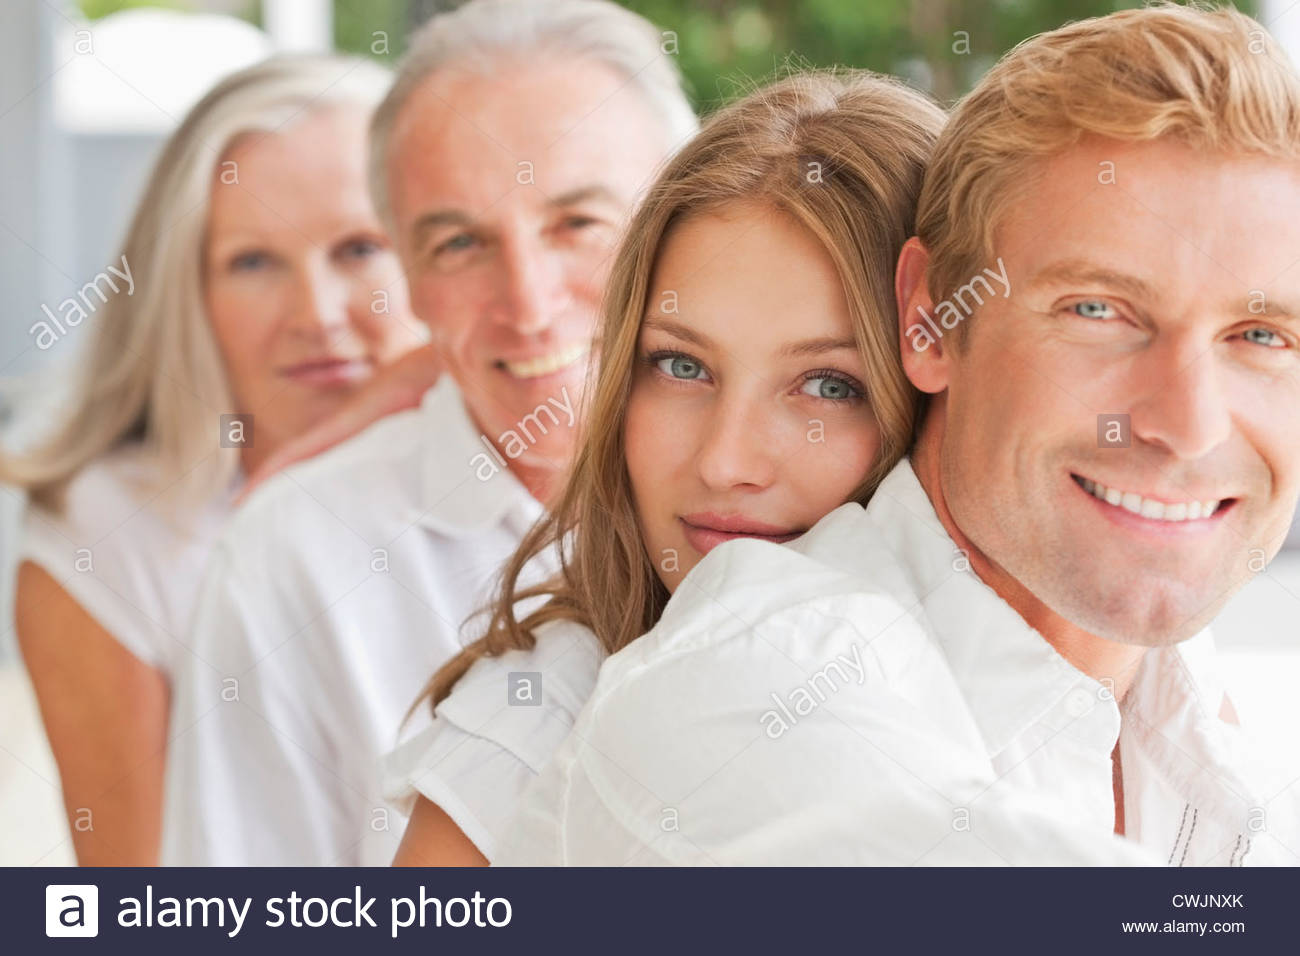 Portrait of smiling family - Stock Image